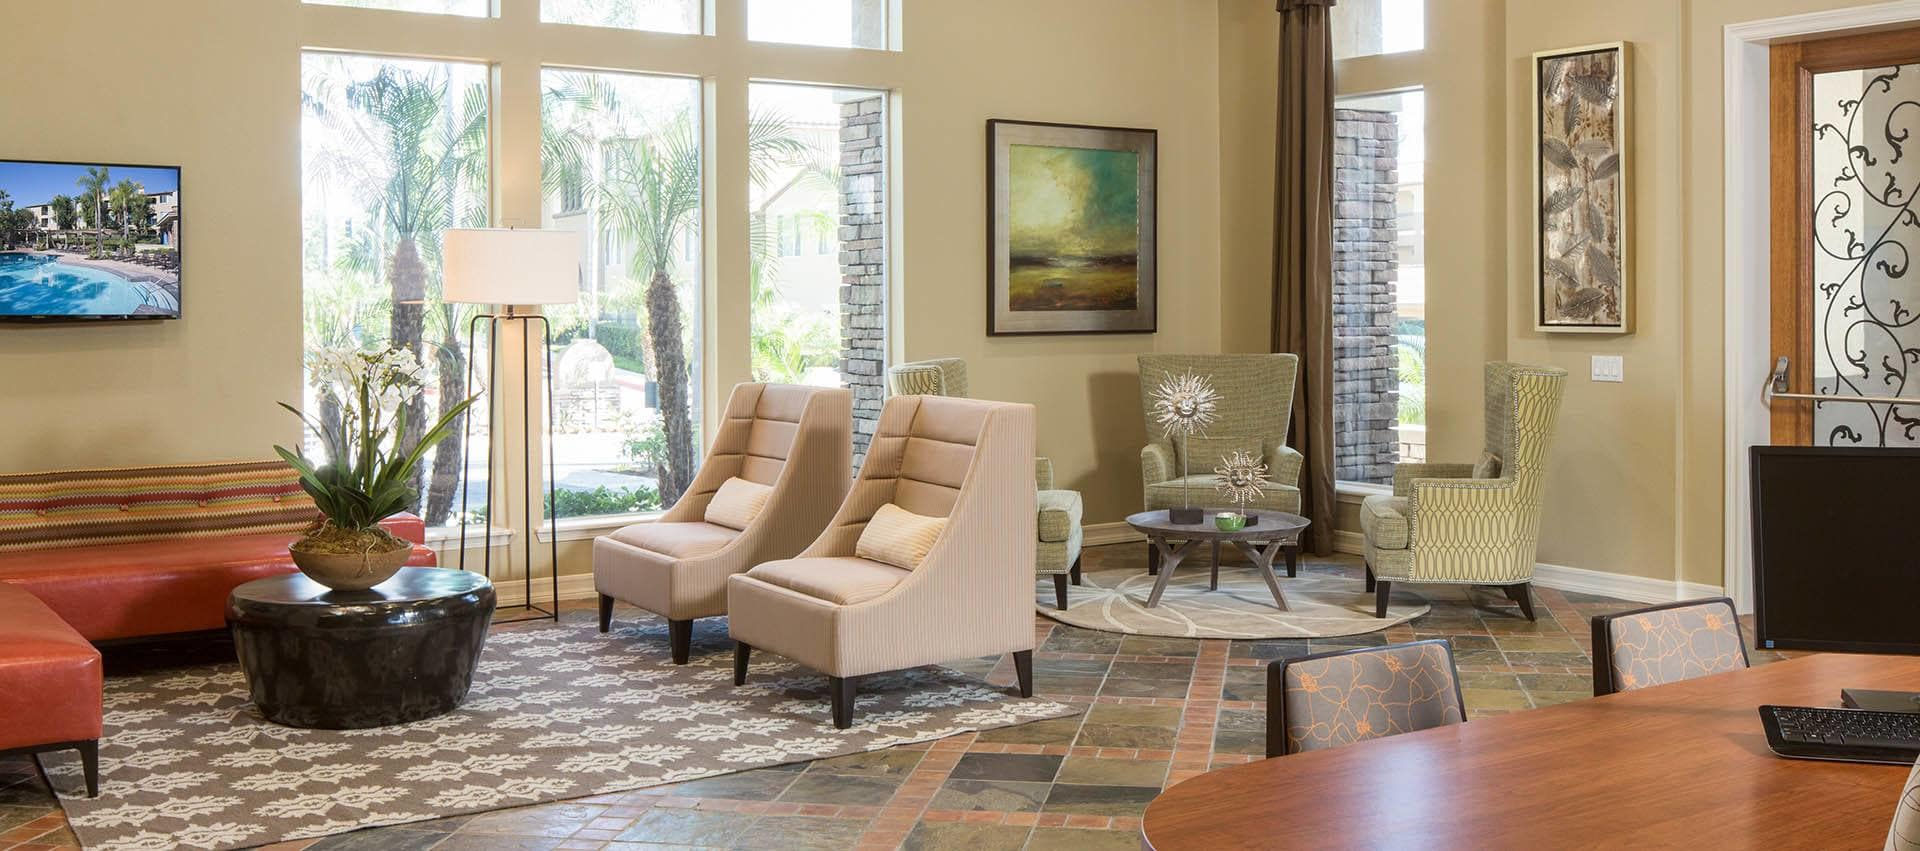 Seating In Lobby in Alize at Aliso Viejo Apartment Homes in Aliso Viejo, California